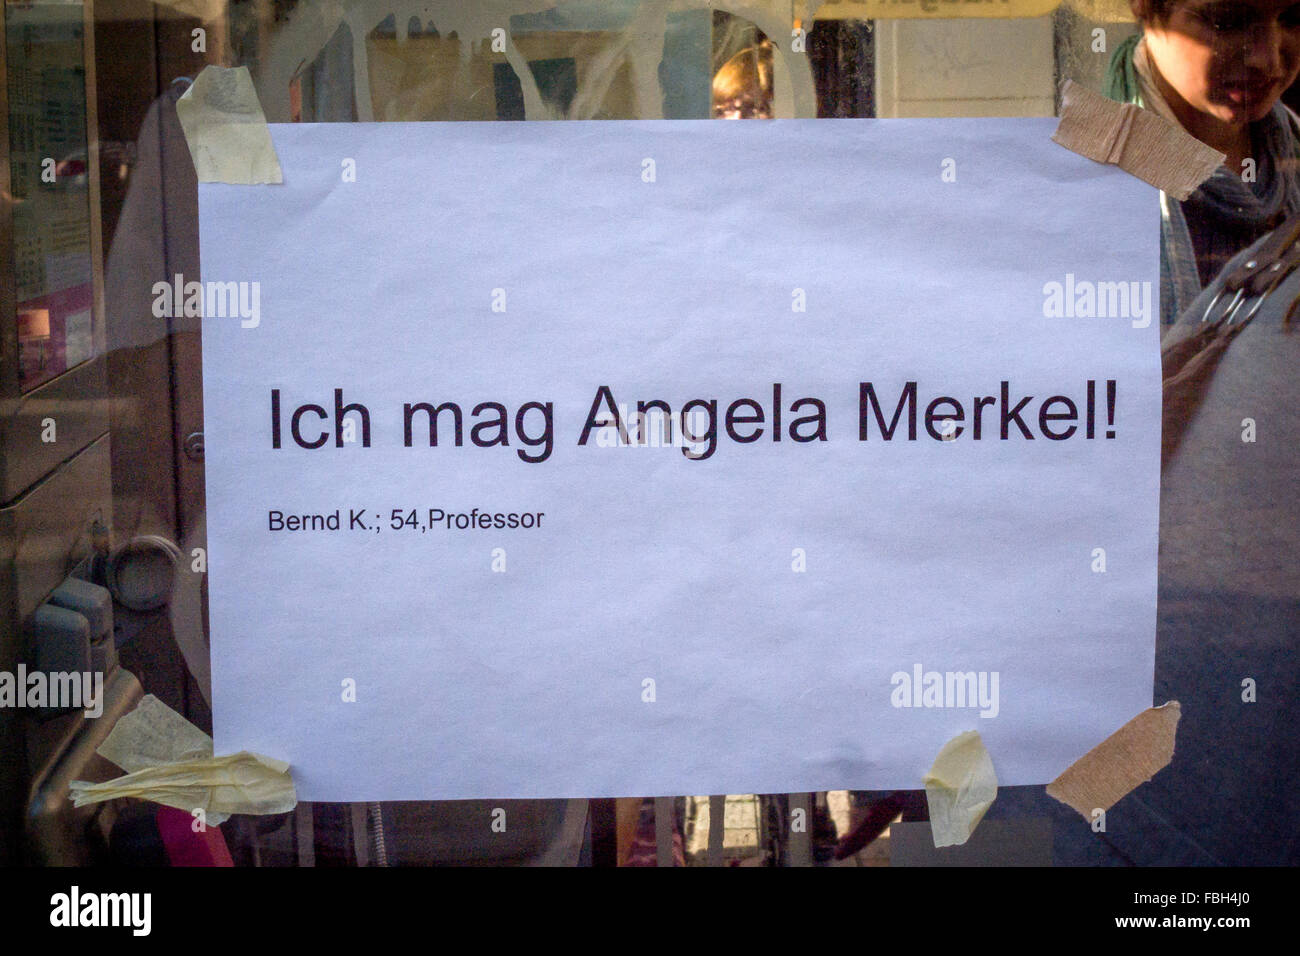 Political poster in support of Angela Merkel. - Stock Image